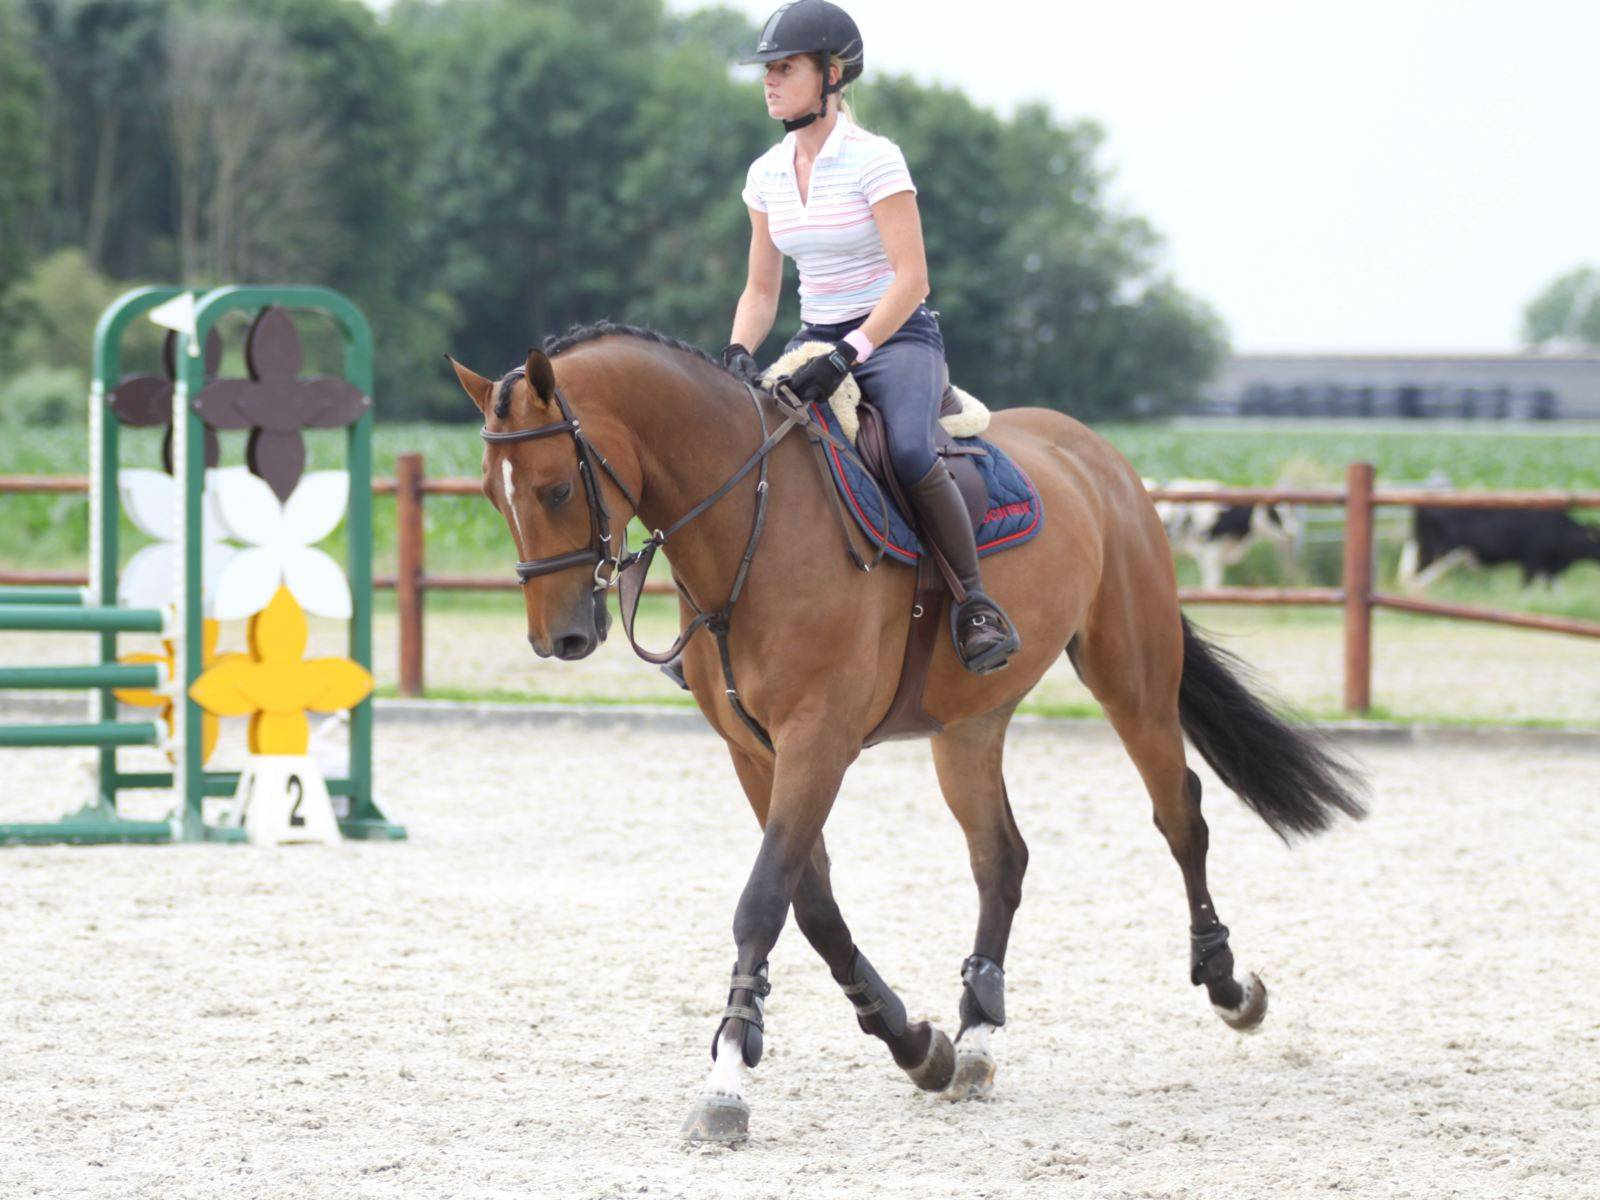 Jumping Gelding for Sale South Africa